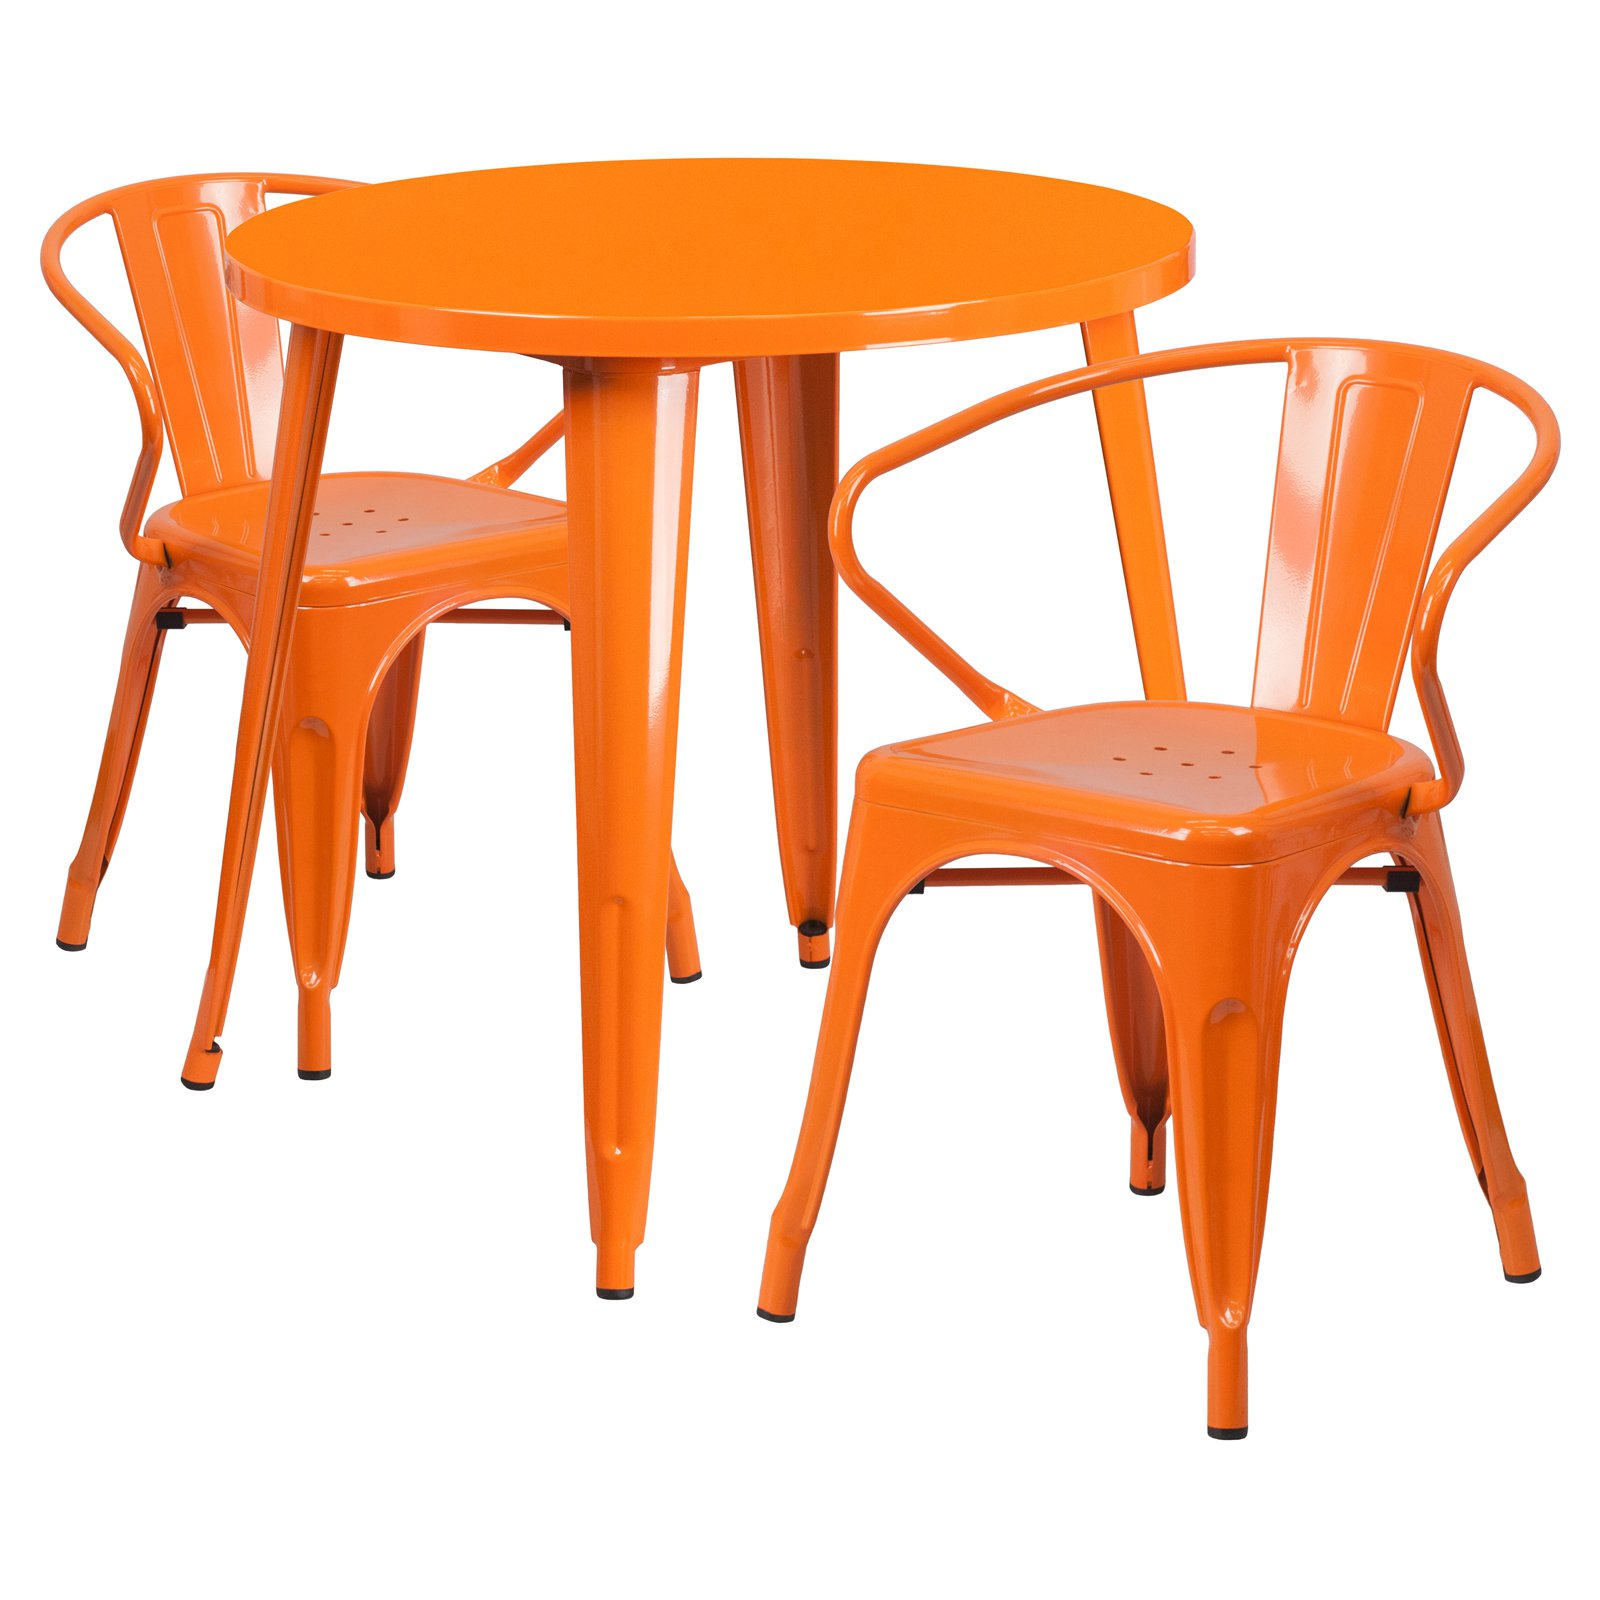 "Flash Furniture 30"" Round Metal Indoor-Outdoor Table Set with 2 Arm Chairs, Multiple Colors"